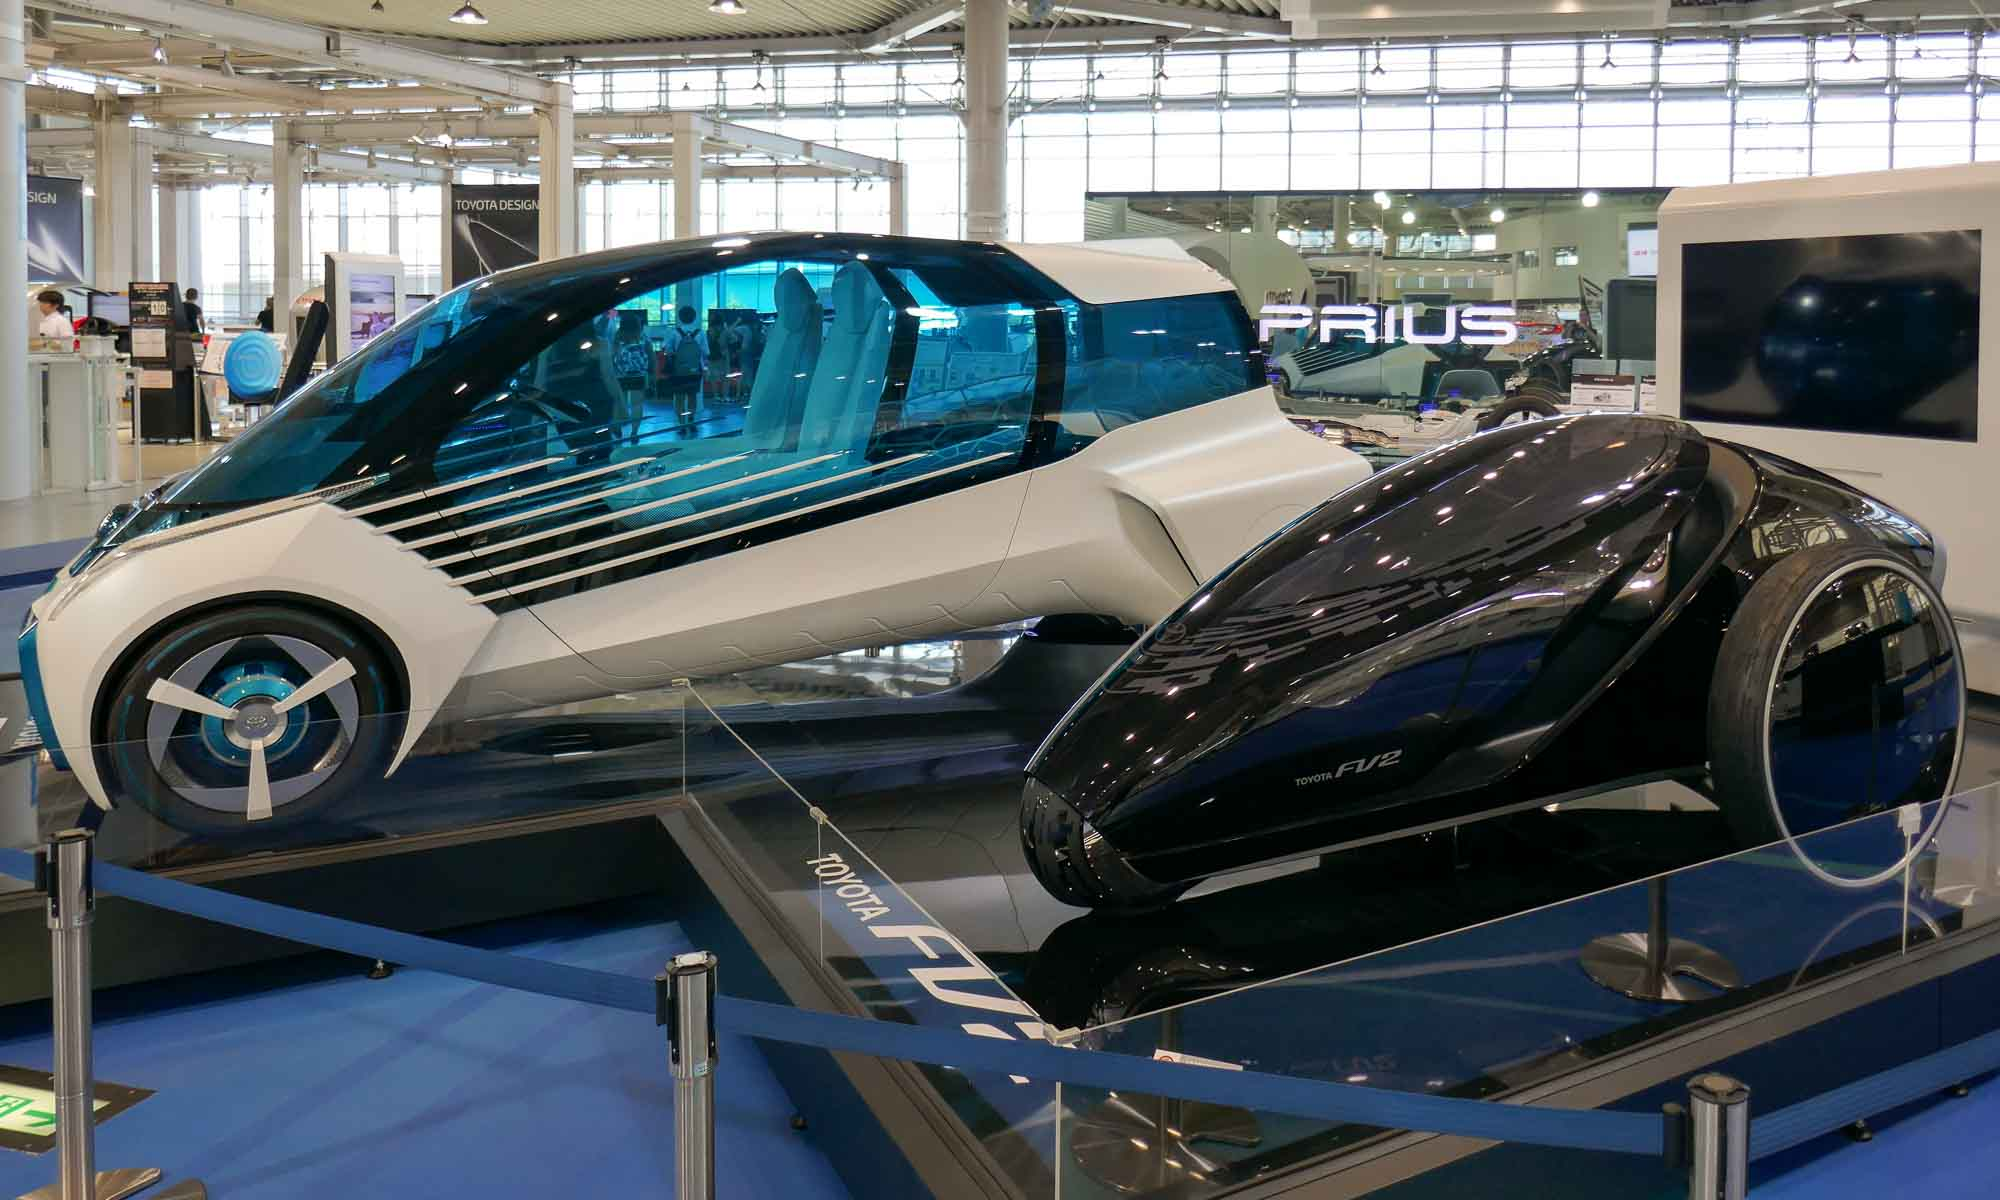 Some of Toyota's futuristic models at MegaWeb